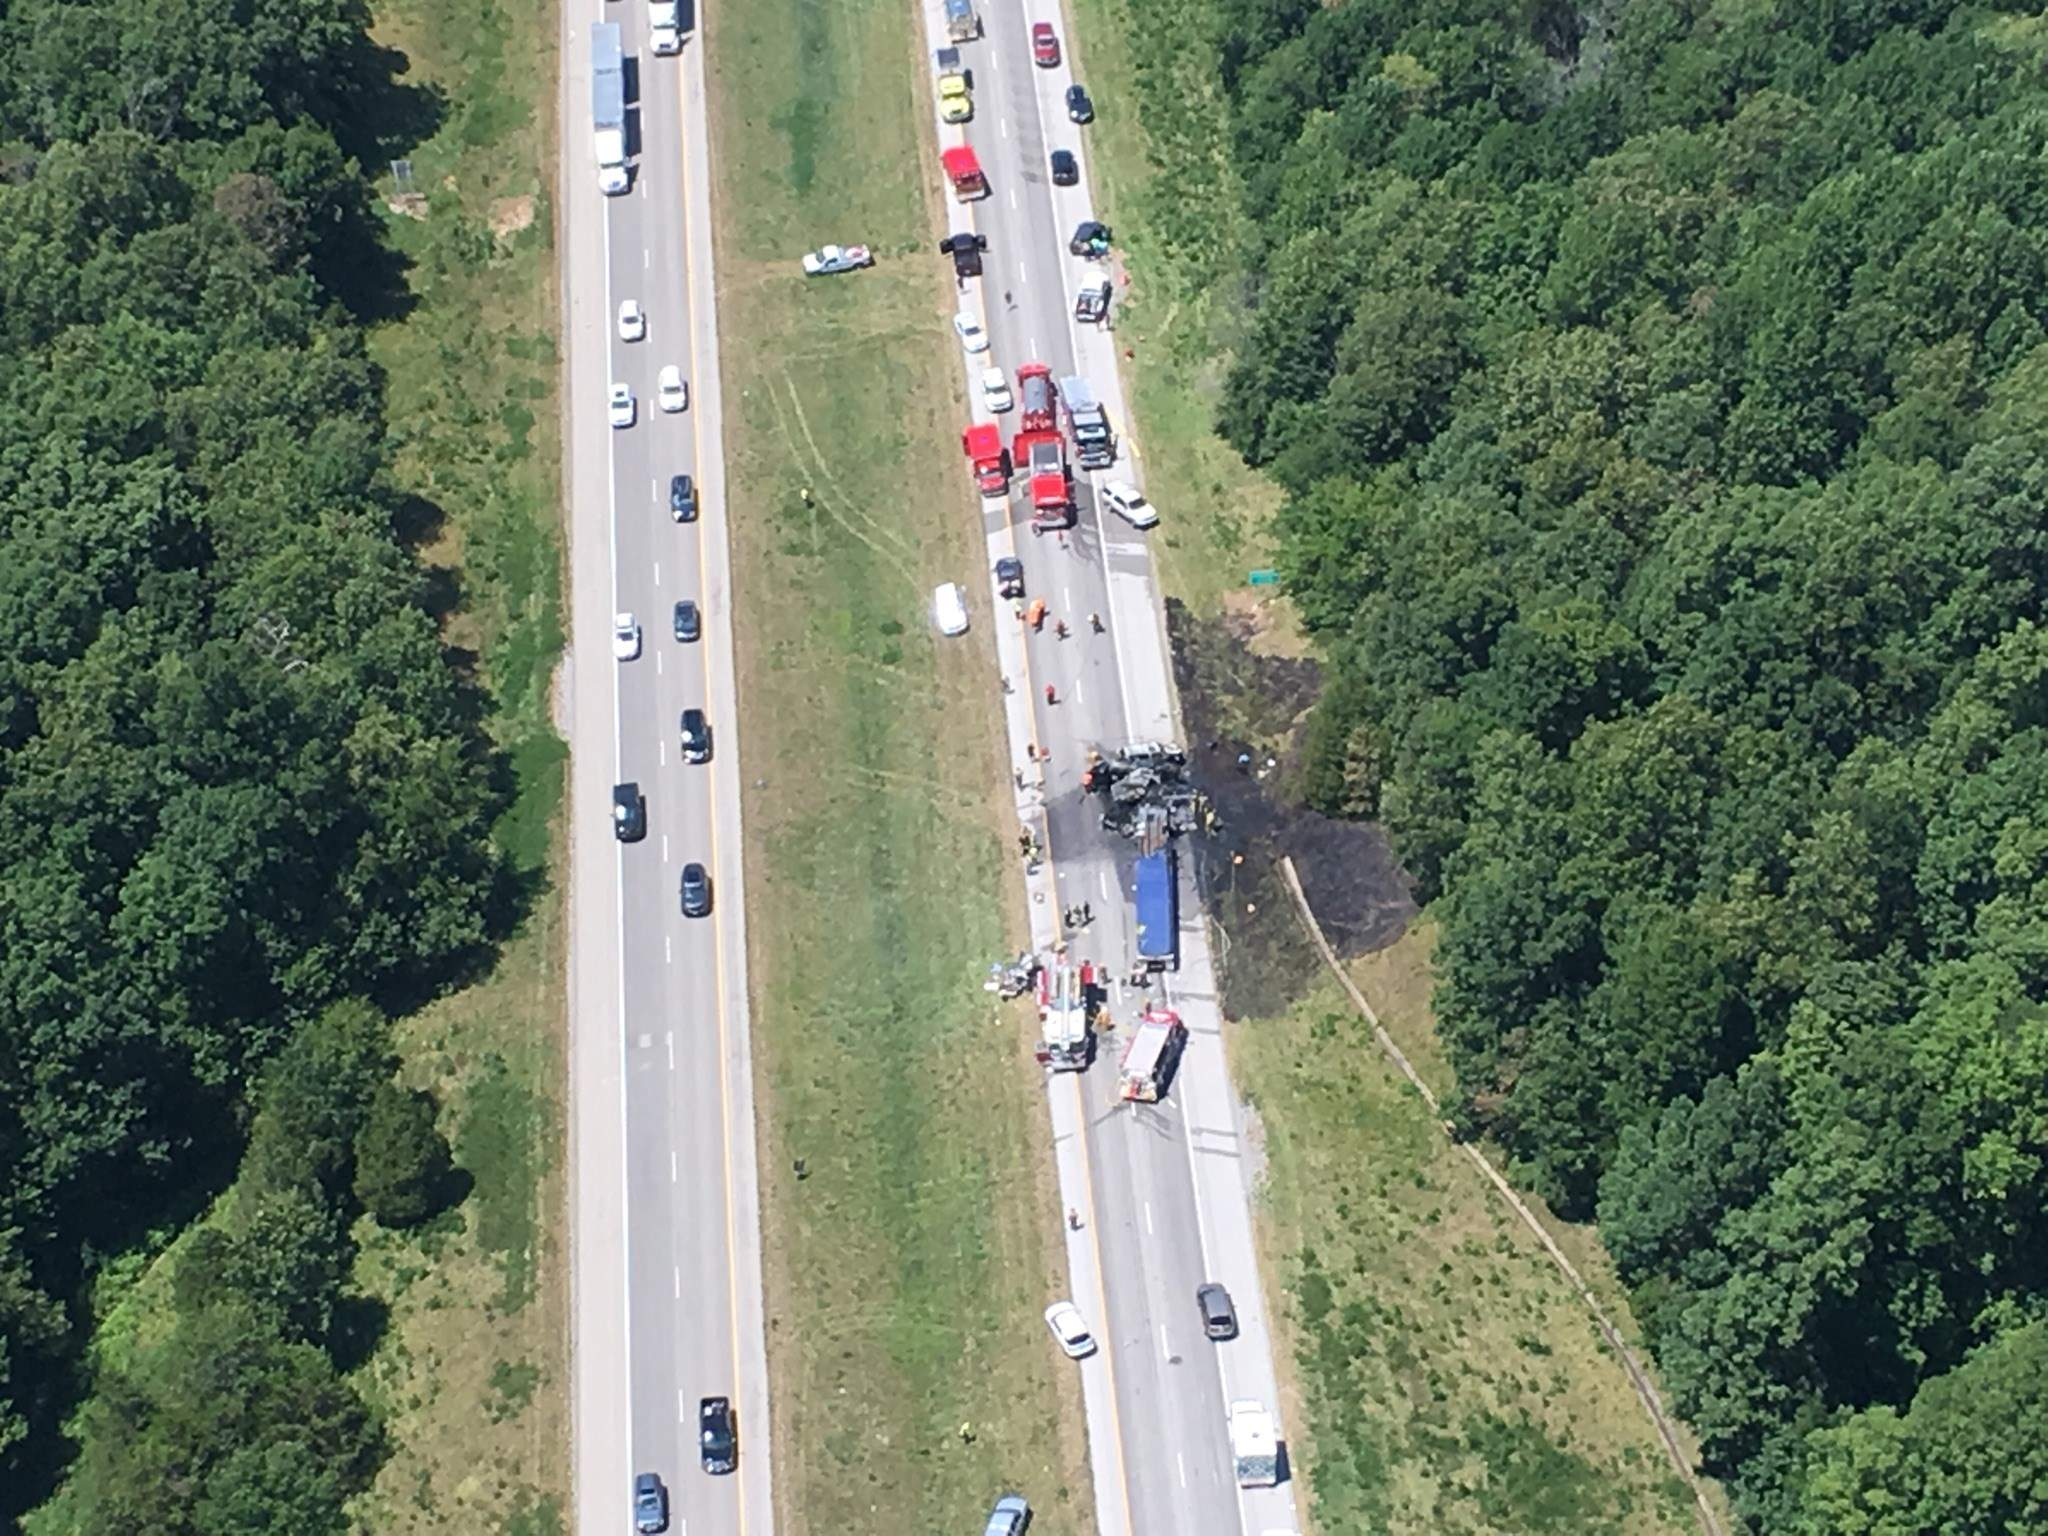 This aerial photo shows the aftermath of an eight-vehicle accident on Interstate 24 near the I-57 split in Johnson County. Three of the vehicles caught fire, with flames spreading to a nearby treeline before being extinguished by the Lake of Egypt Fire Department.